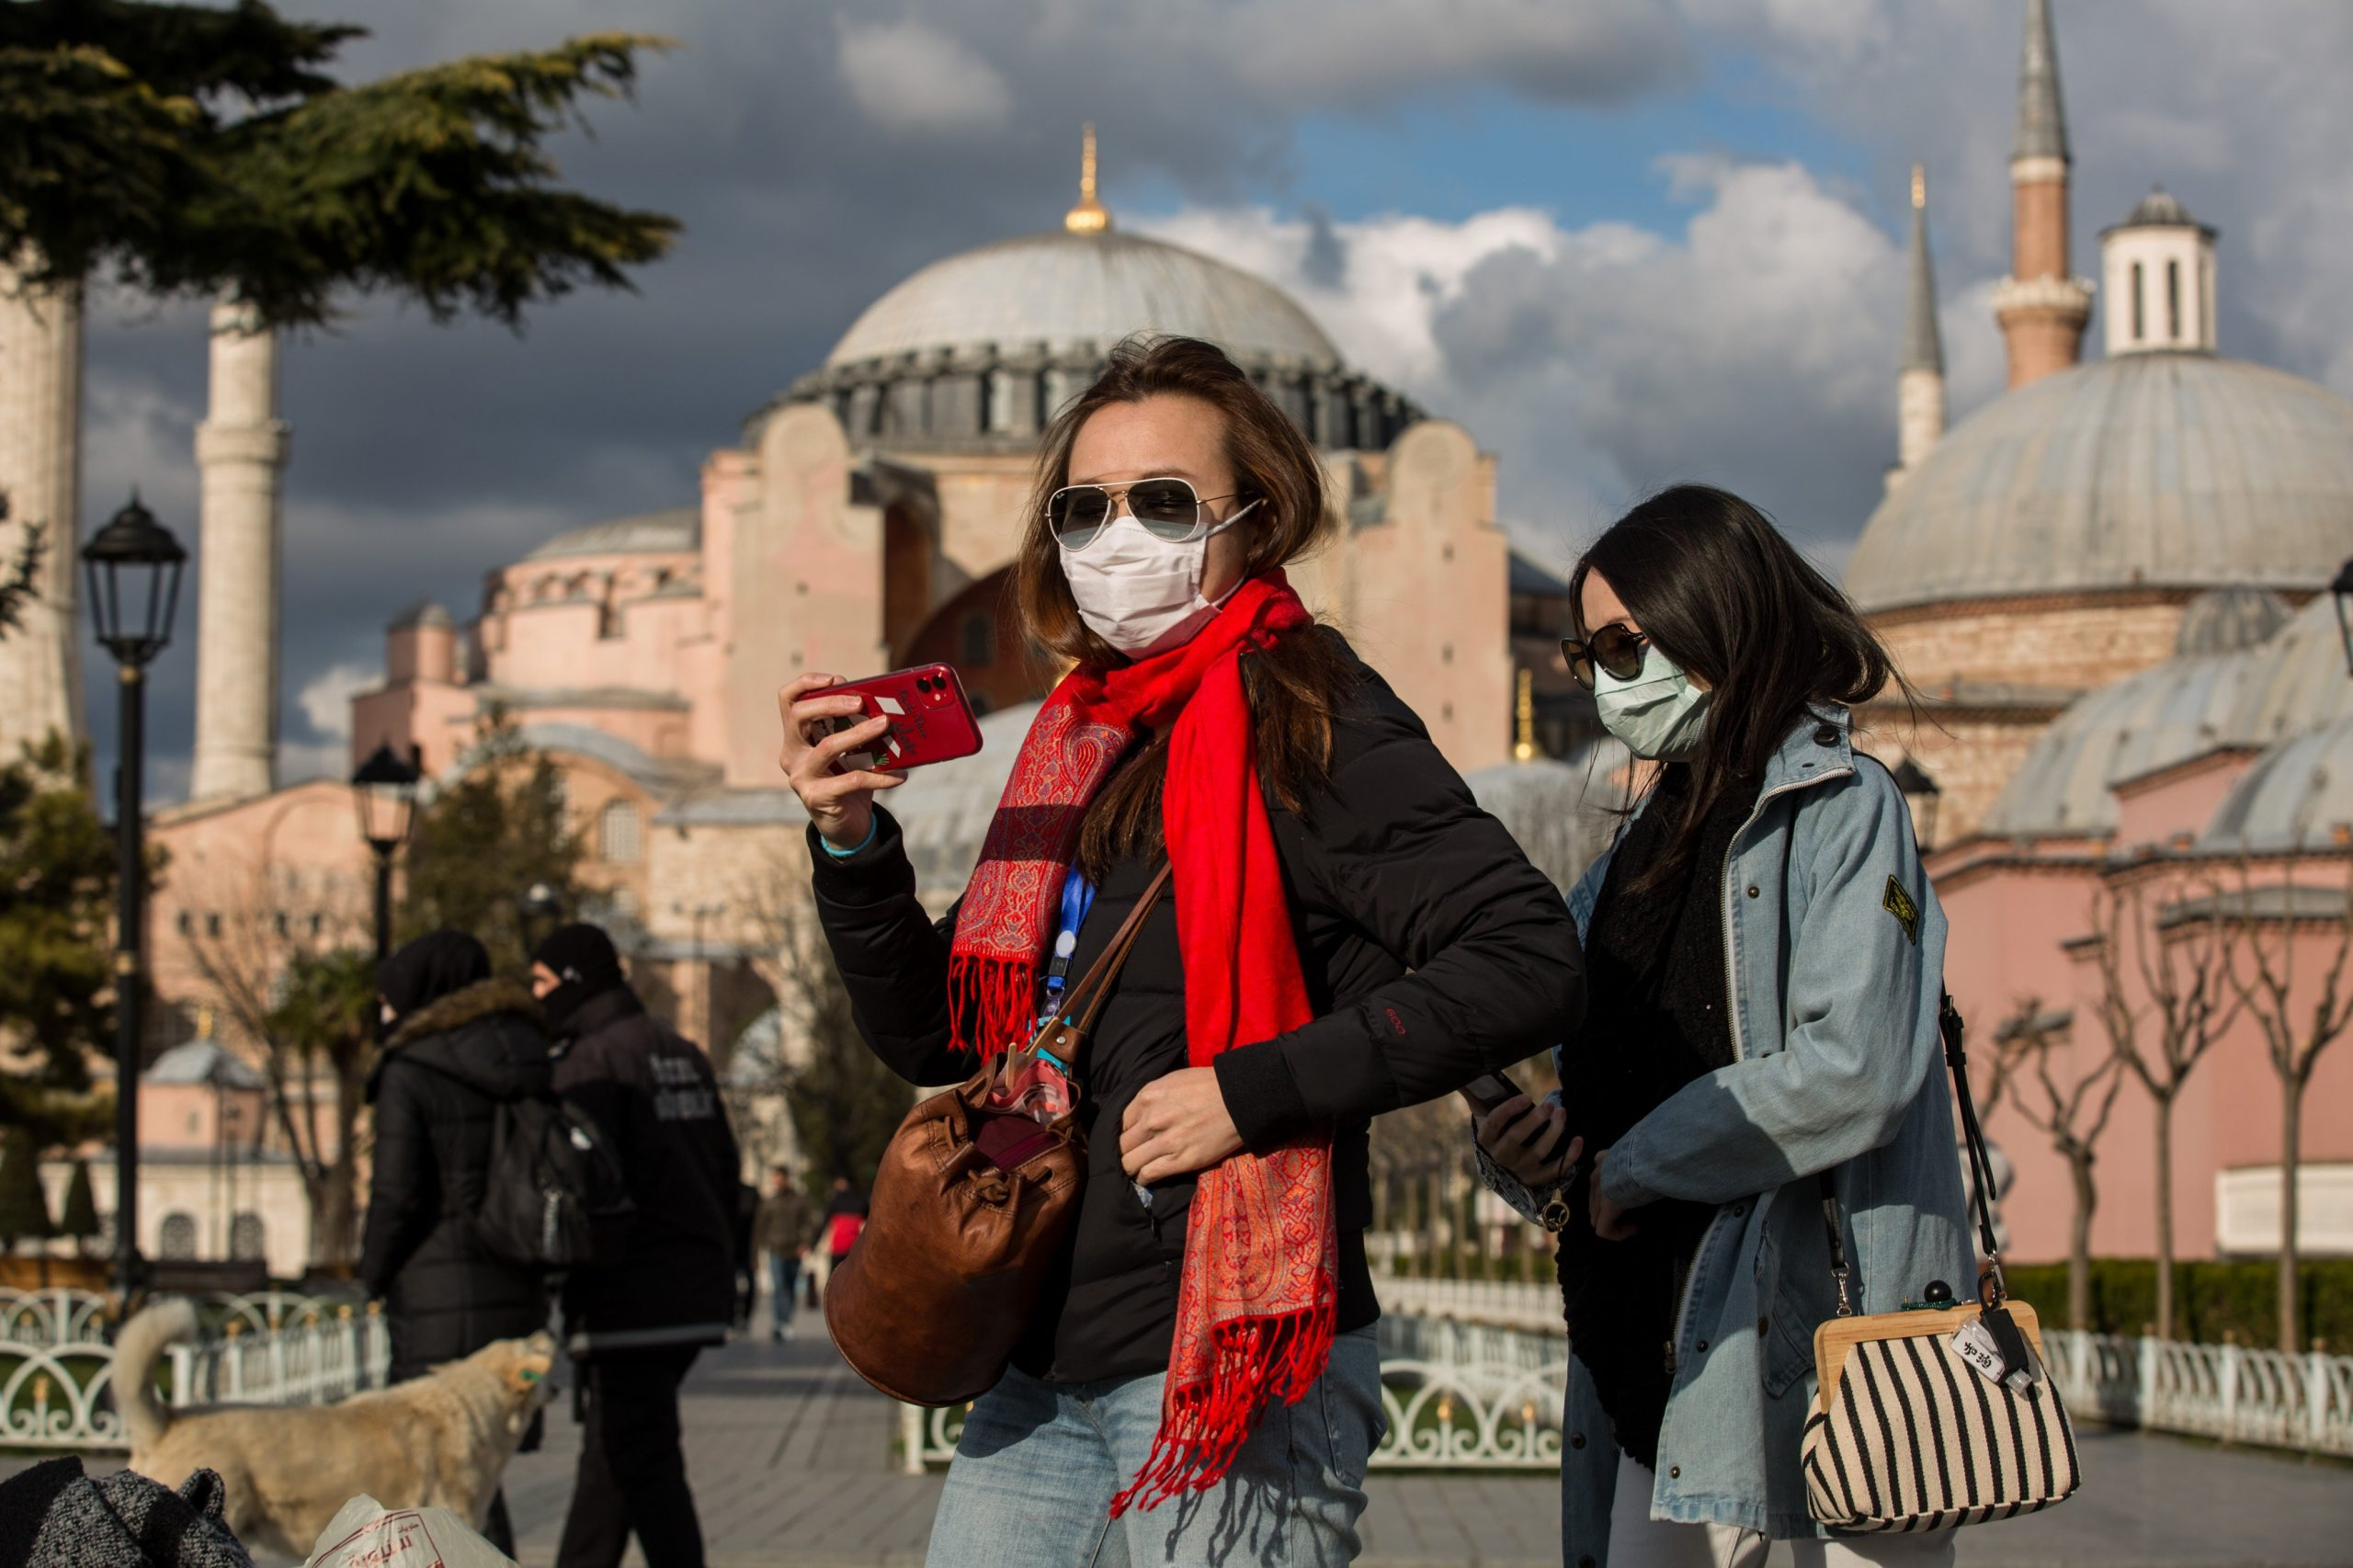 Euronews: How will the coronavirus transform the tourism in Turkey?